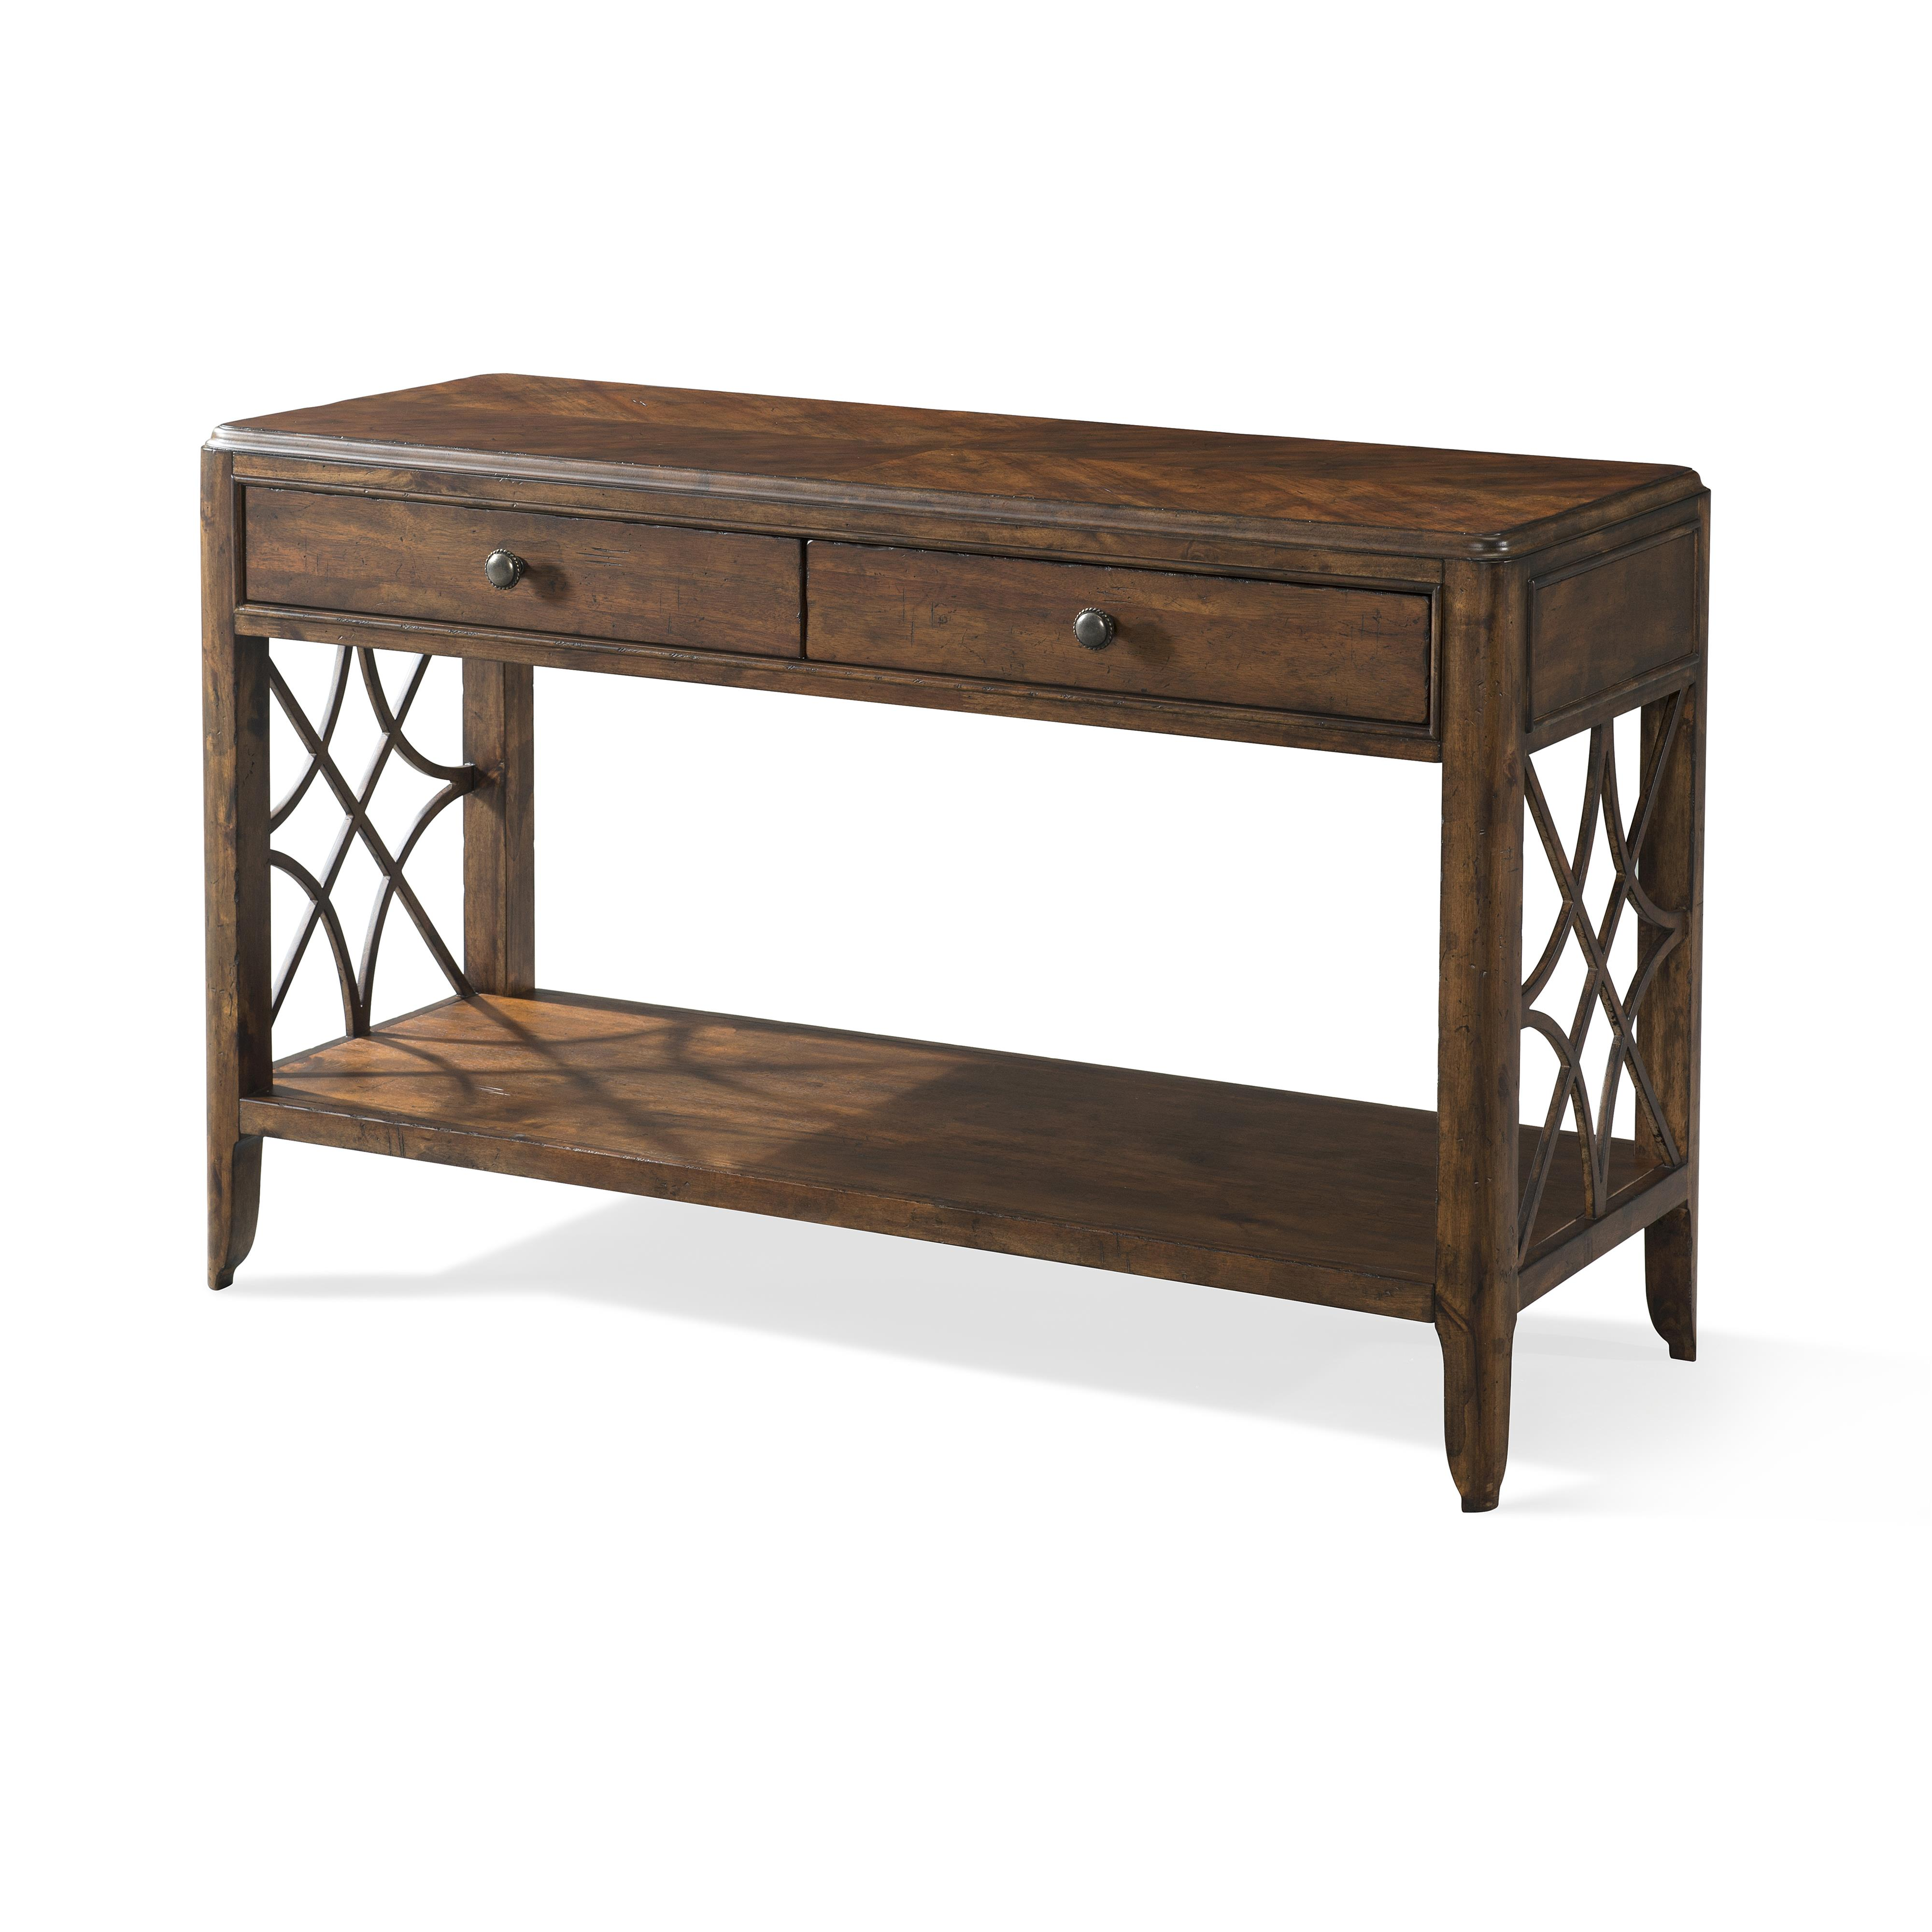 Trisha Yearwood Home Georgia Rain Drawer Sofa Table by Trisha Yearwood Home Collection by Klaussner at Rooms for Less